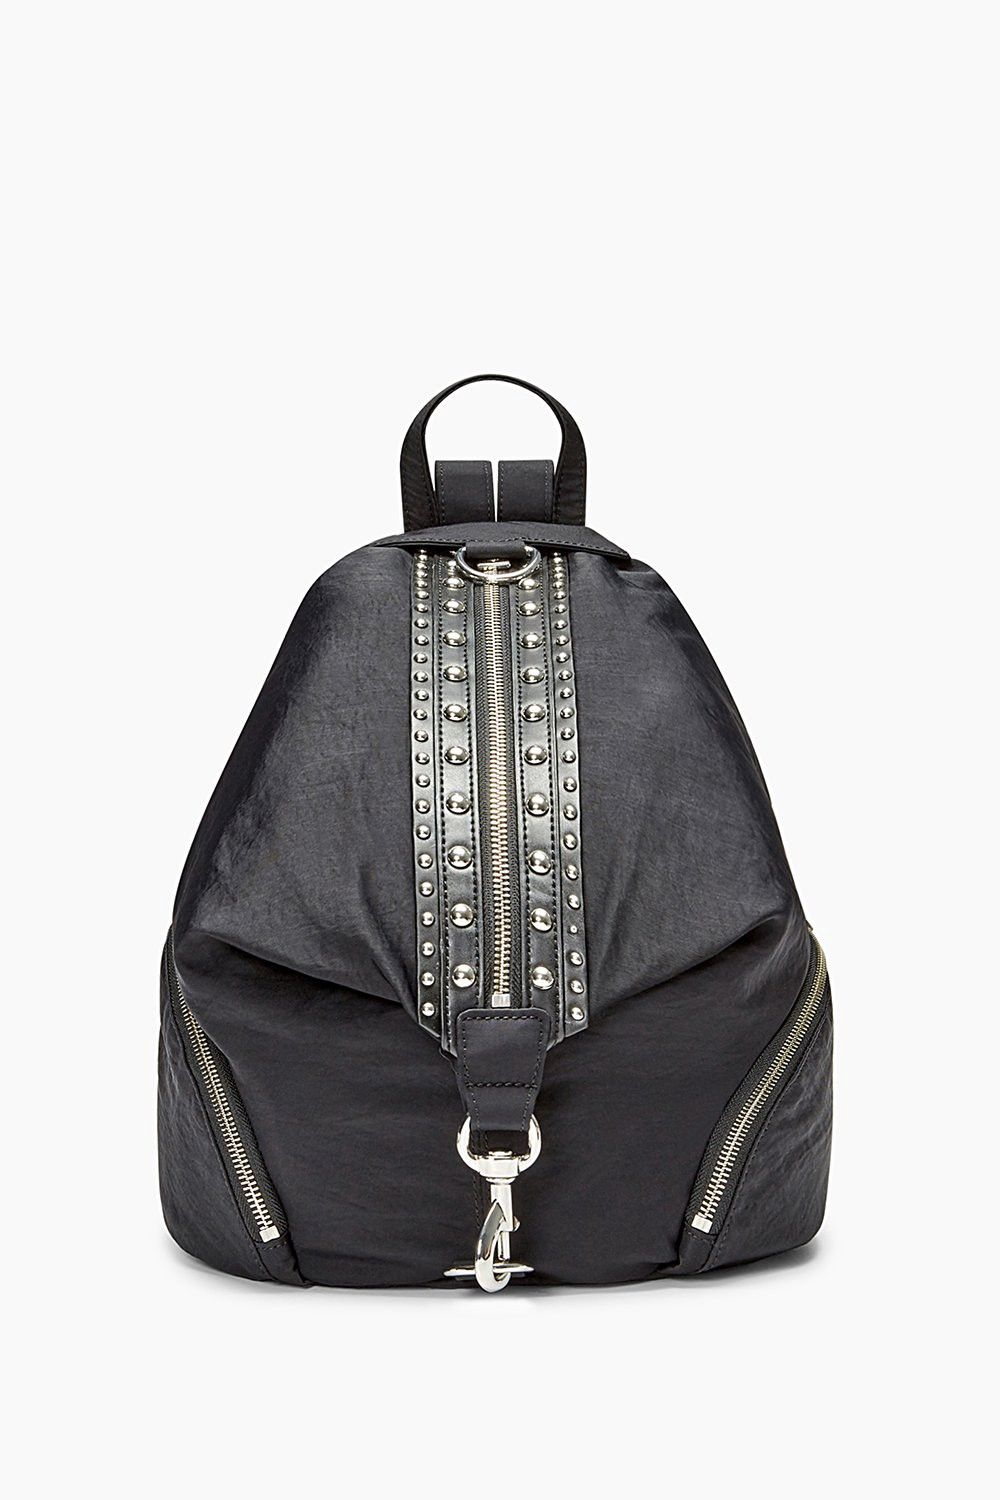 ca85272ff454 REBECCA MINKOFF Julian Nylon Backpack With Studs.  rebeccaminkoff  bags   nylon  backpacks